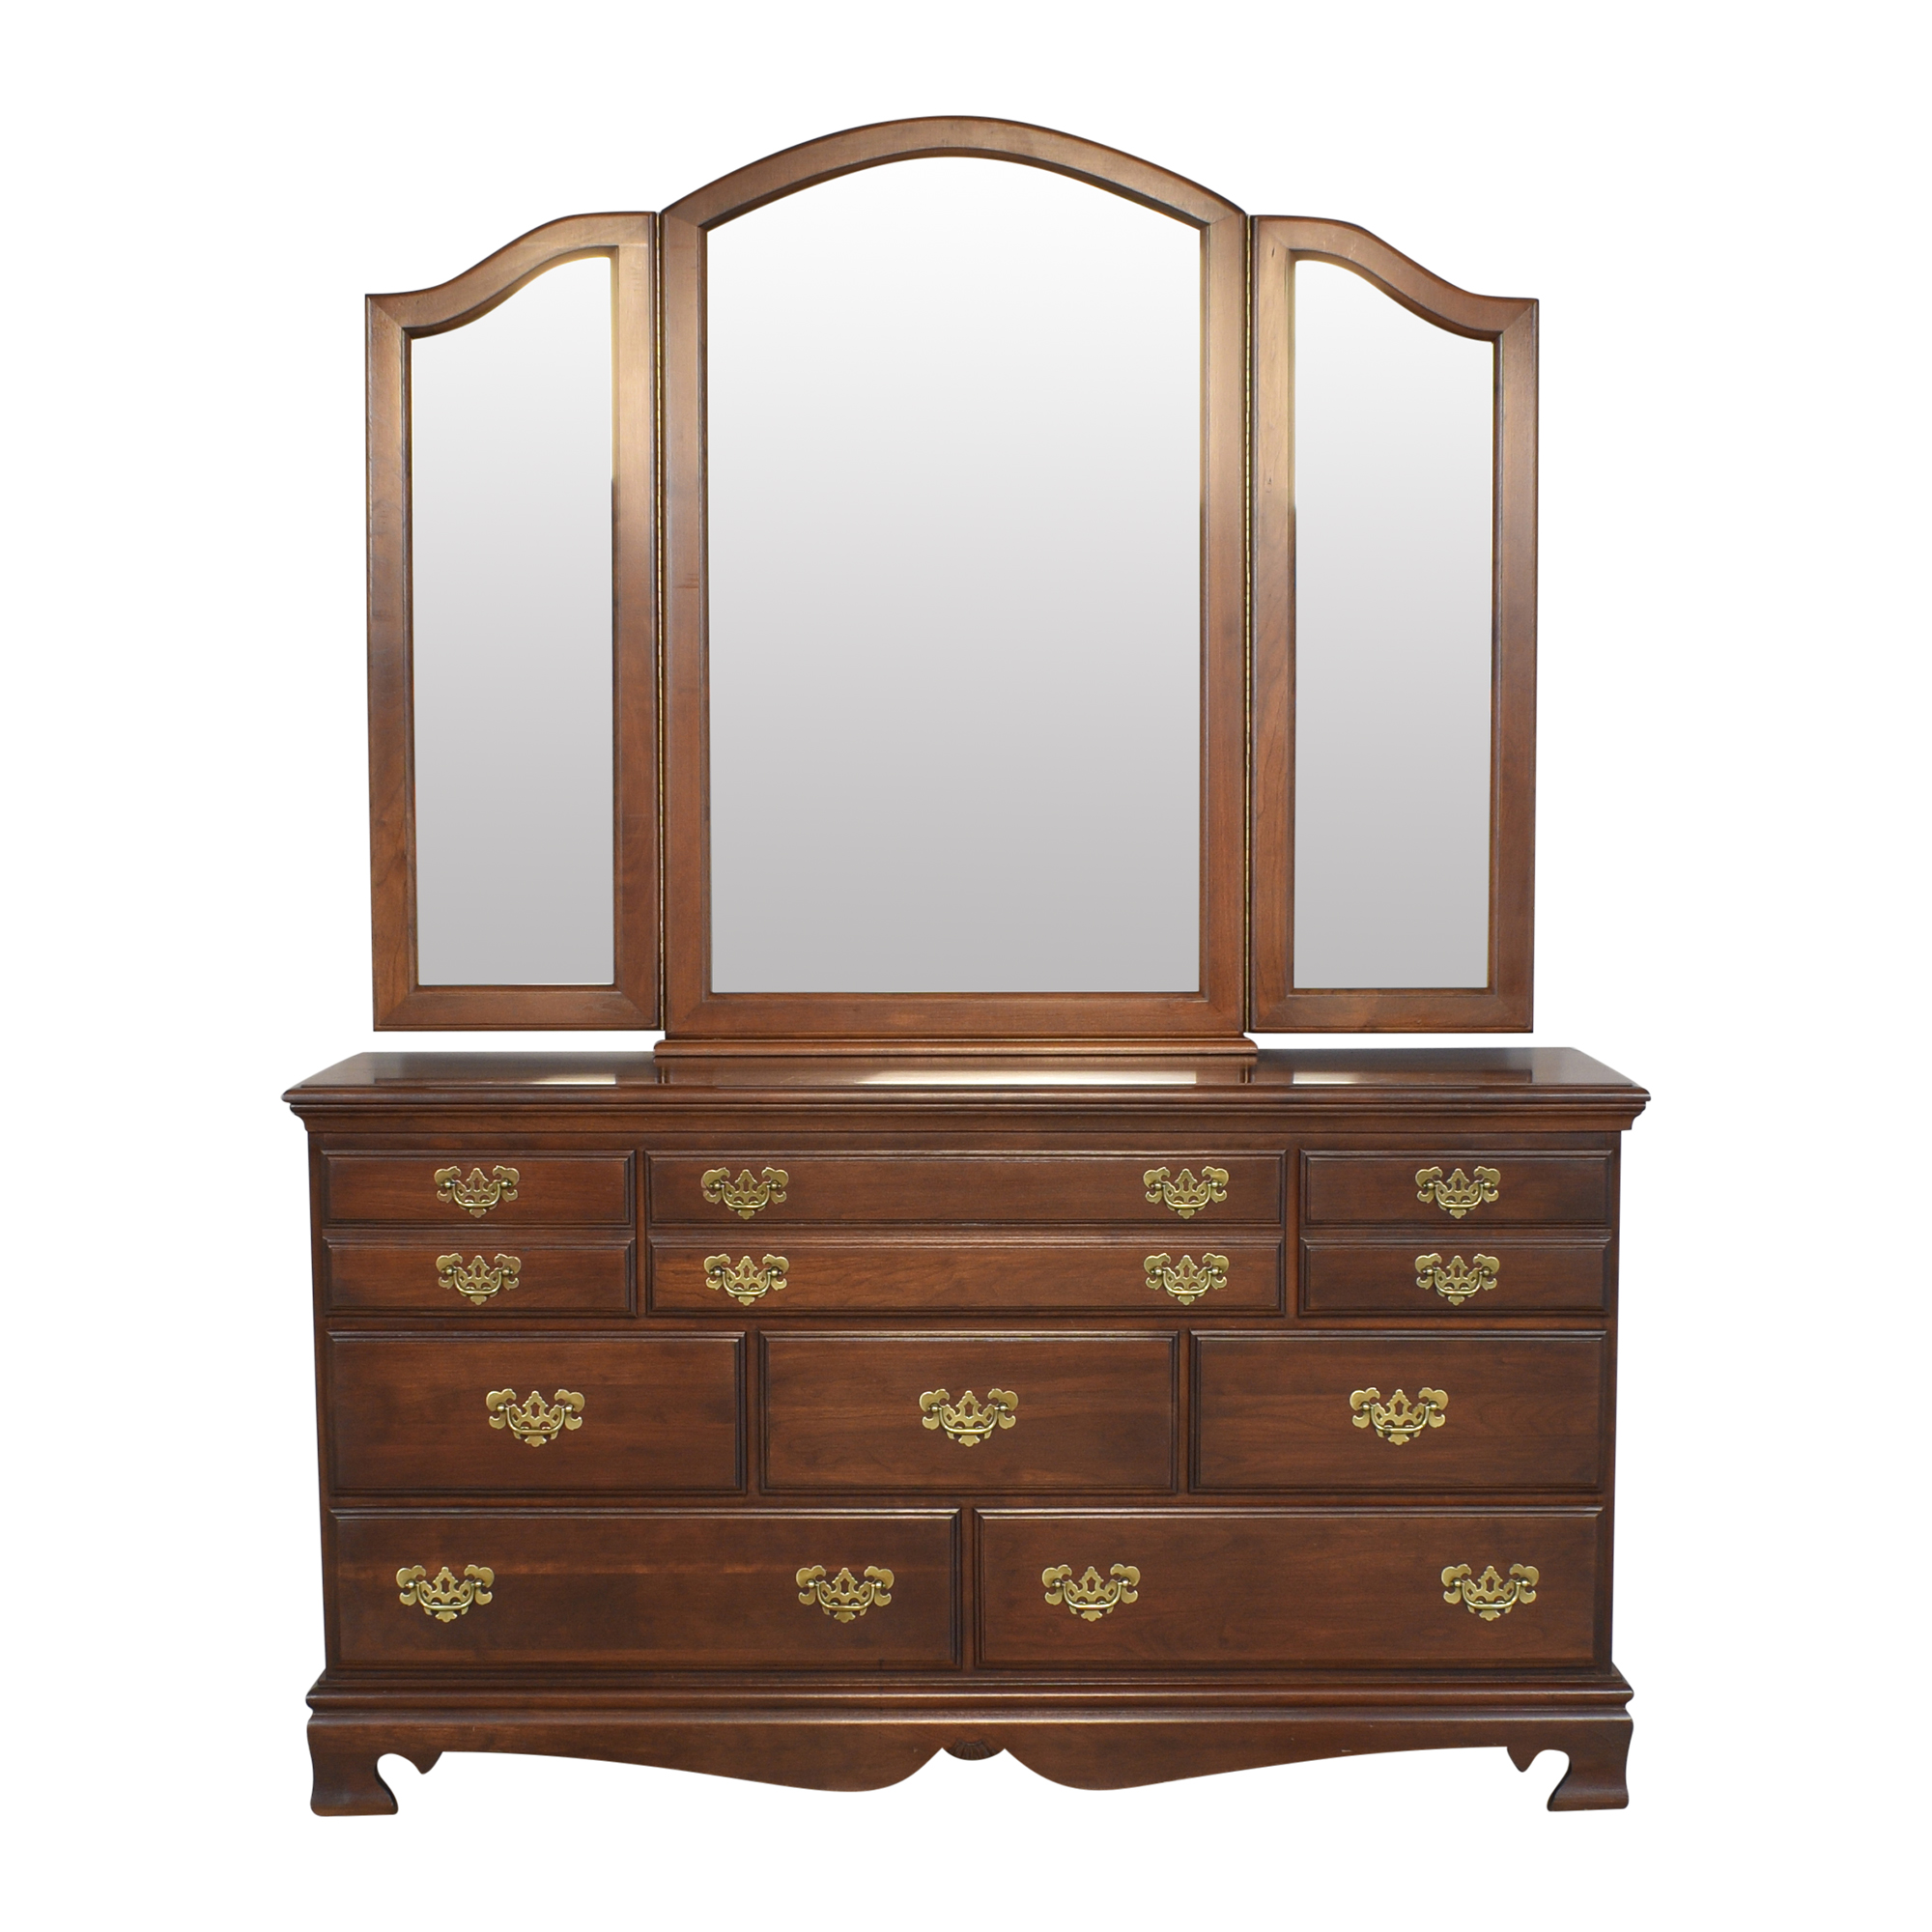 Dresser with Three Panel Mirror / Dressers